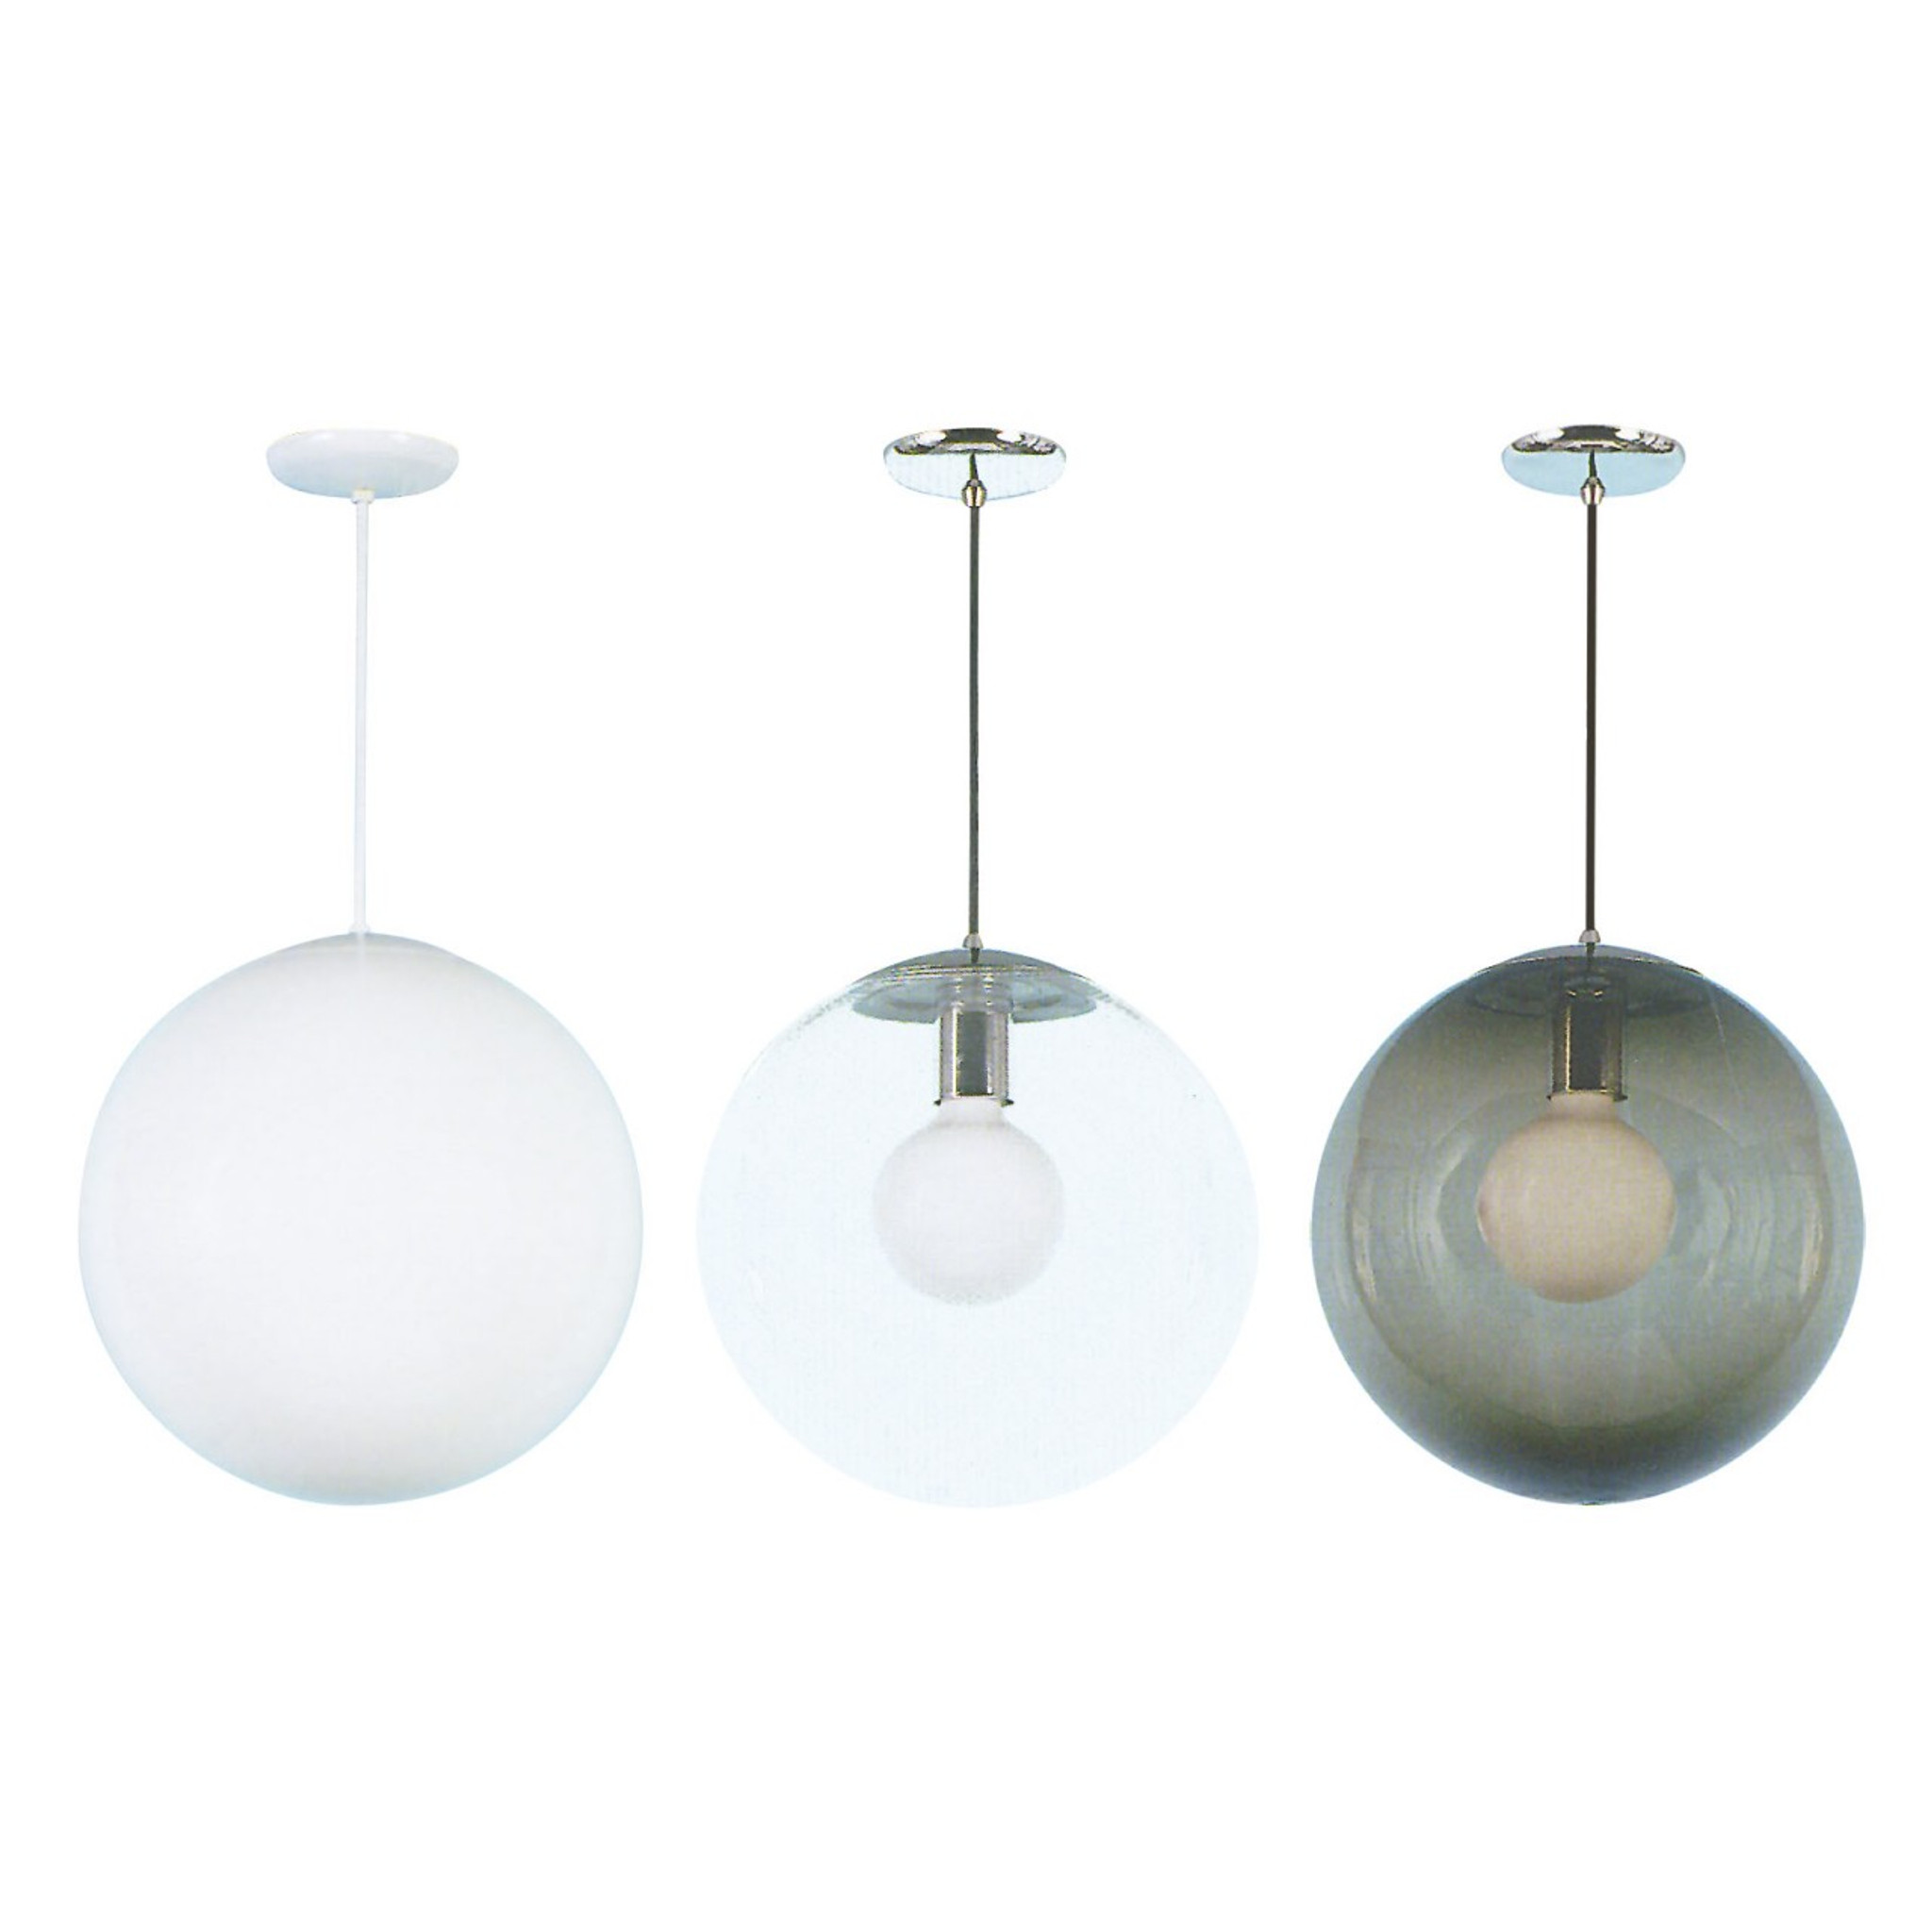 Eighteen inch globe pendant hip haven globe pendant color options aloadofball Gallery